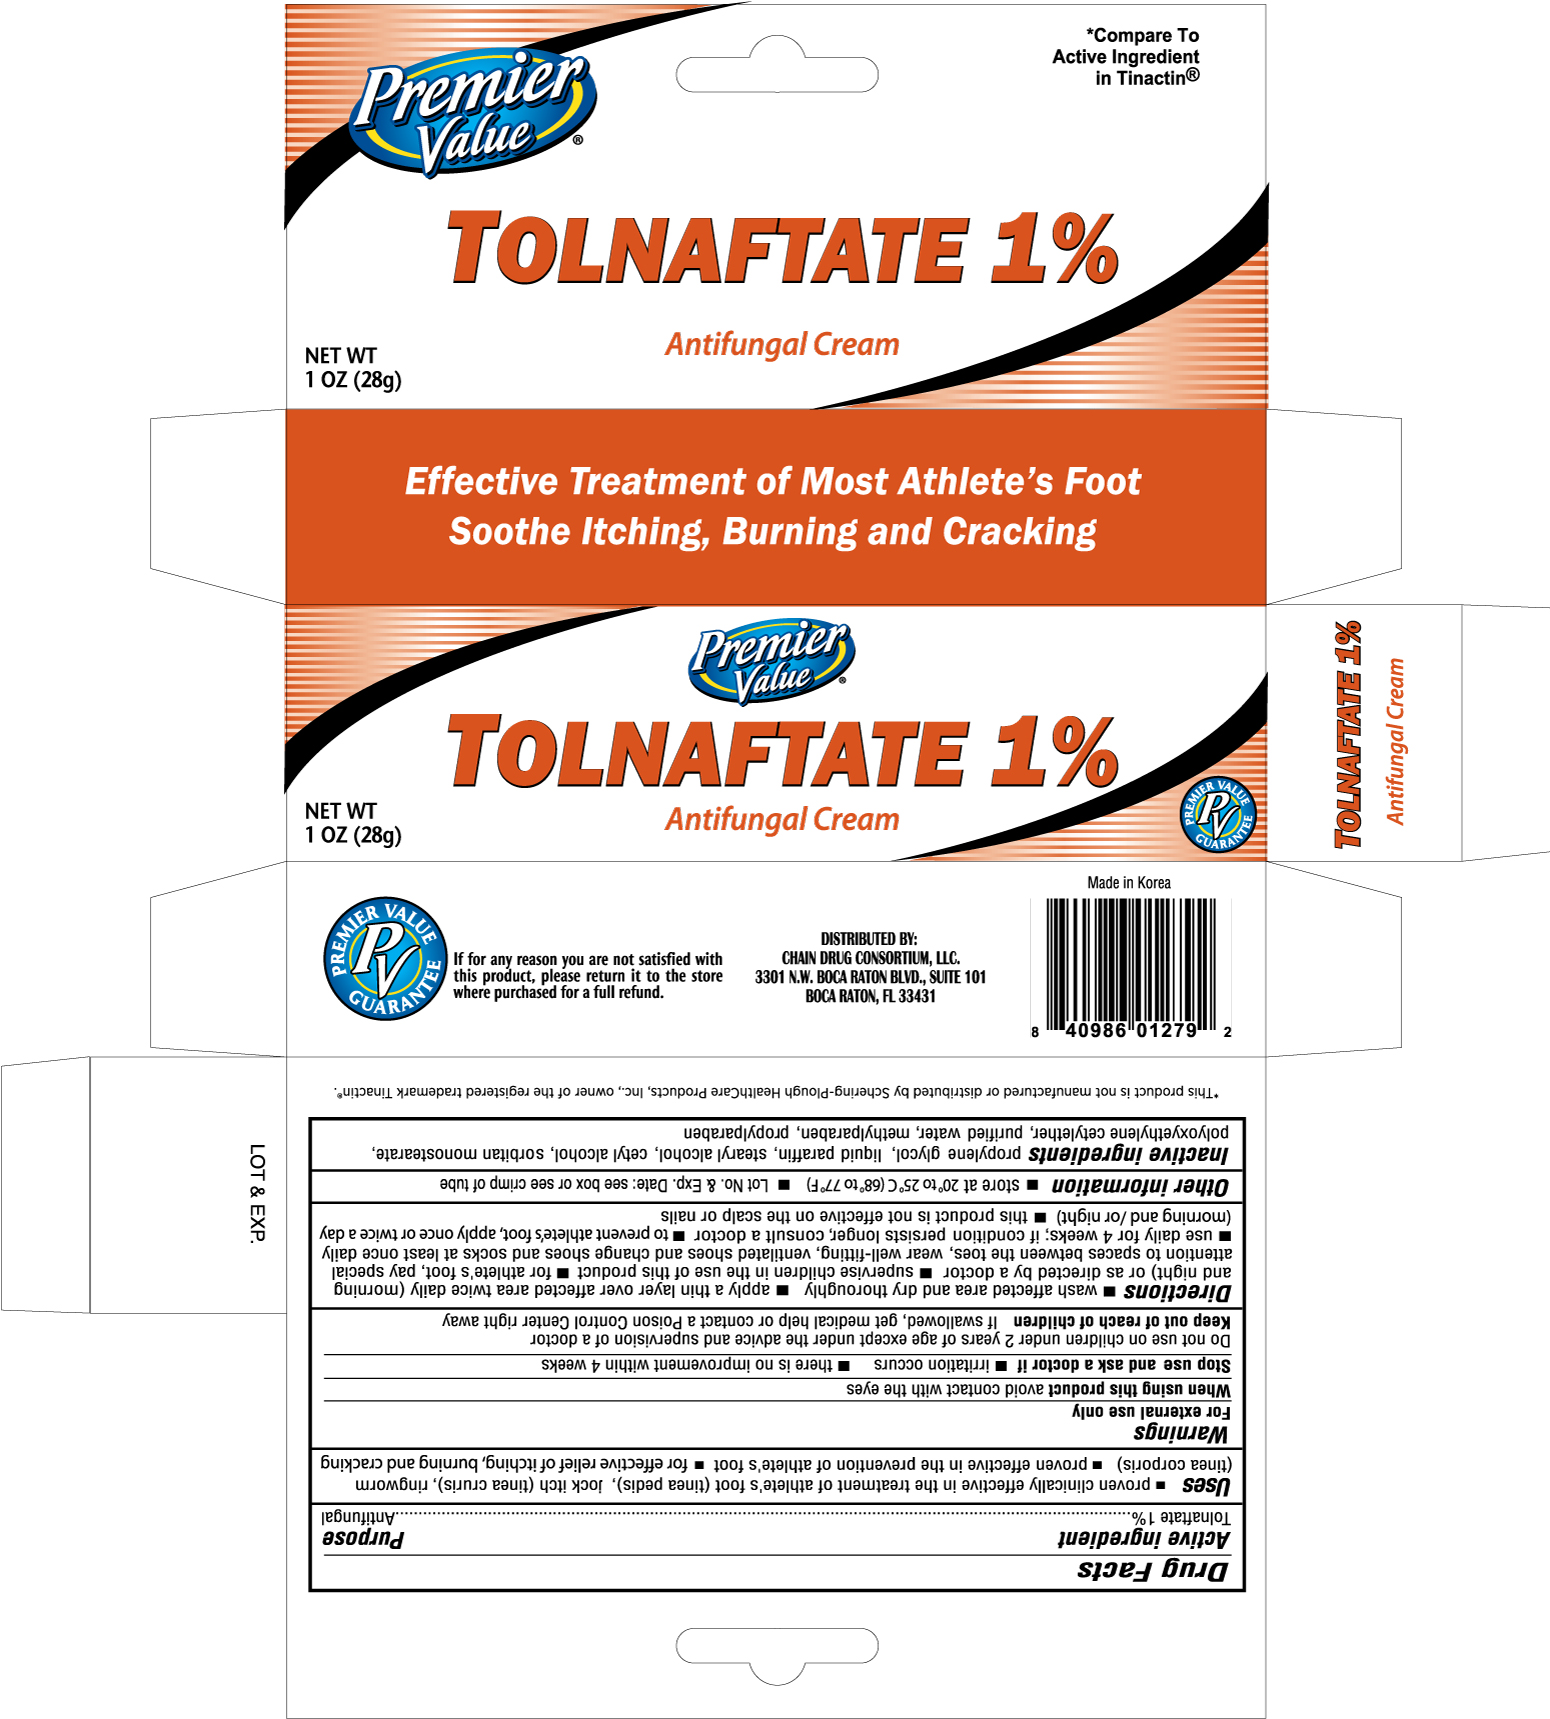 Premier Value Tolnaftate Antifungal (Tolnaftate) Cream [Chain Drug Consortium, Llc]